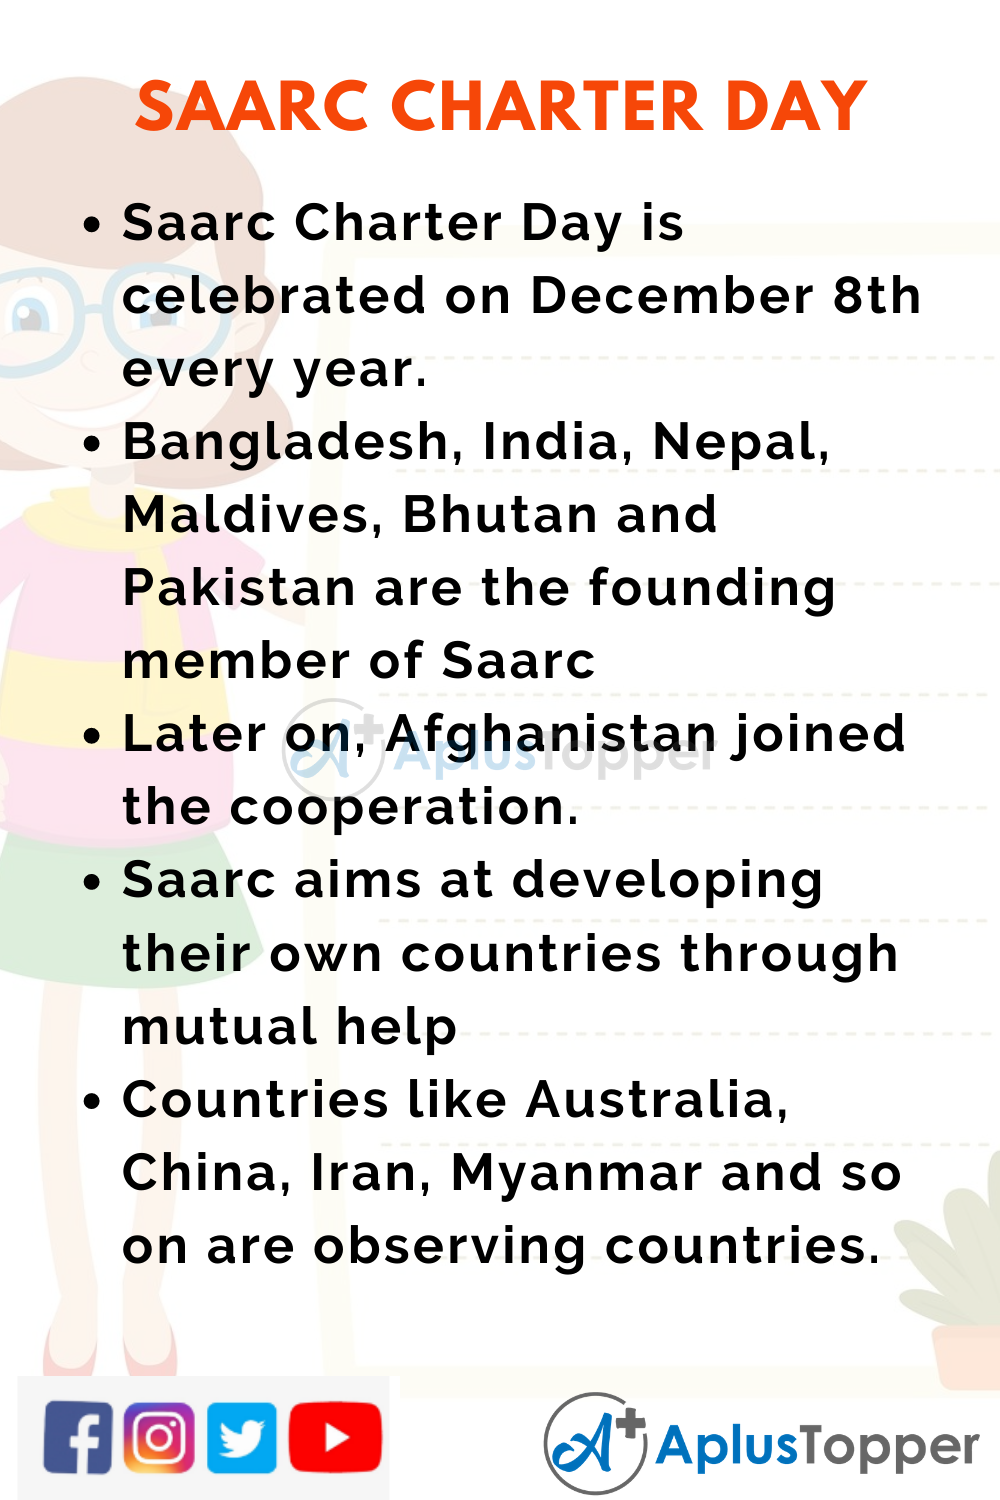 10 Lines On Saarc Charter Day for Kids